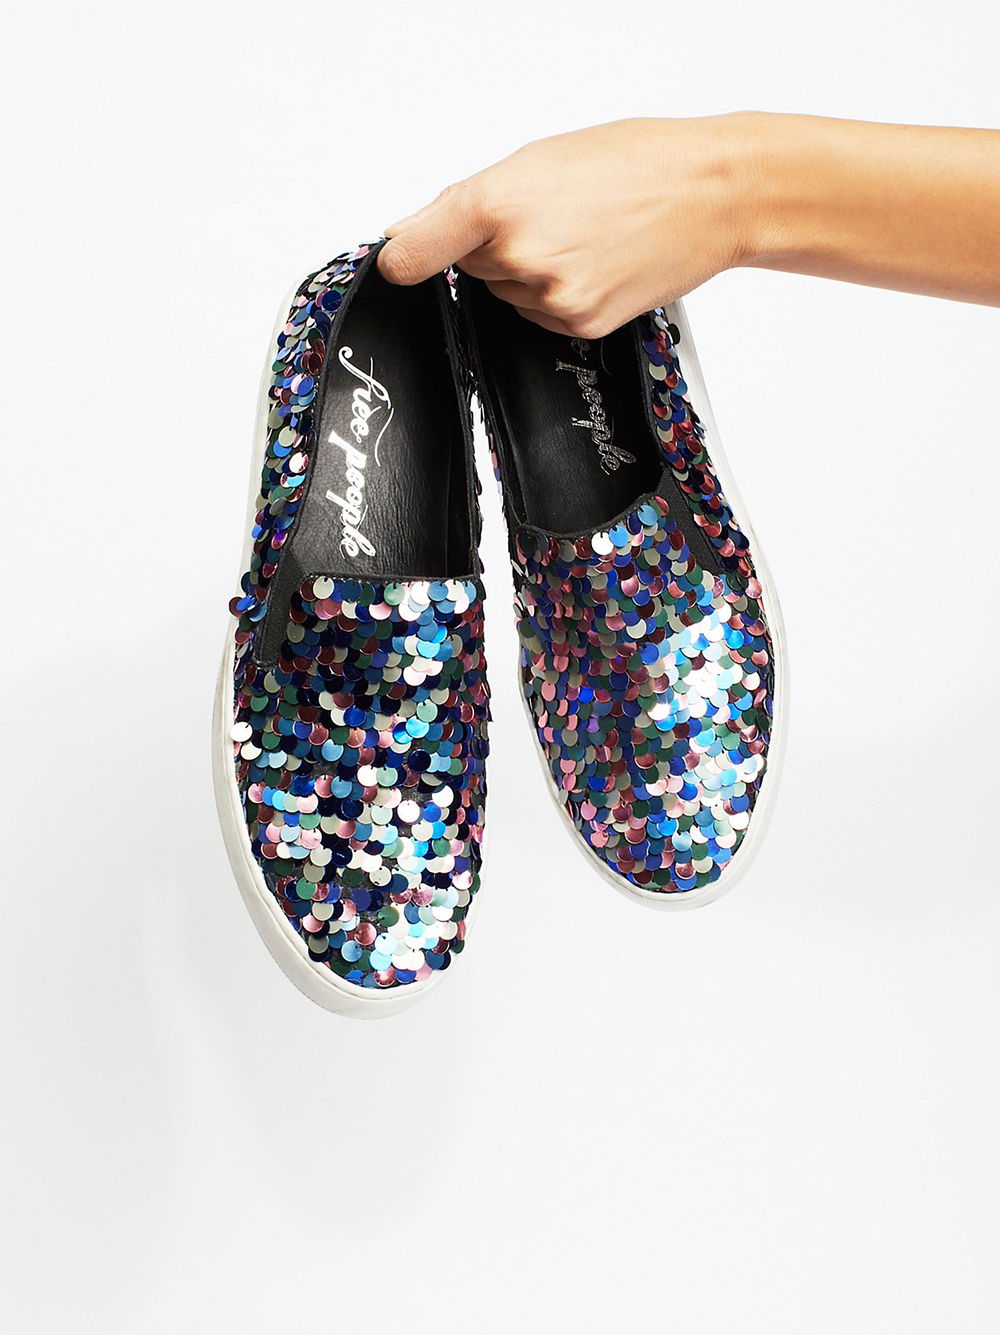 FP Collection Bouquet Slip-On Sneaker - Statement shoes